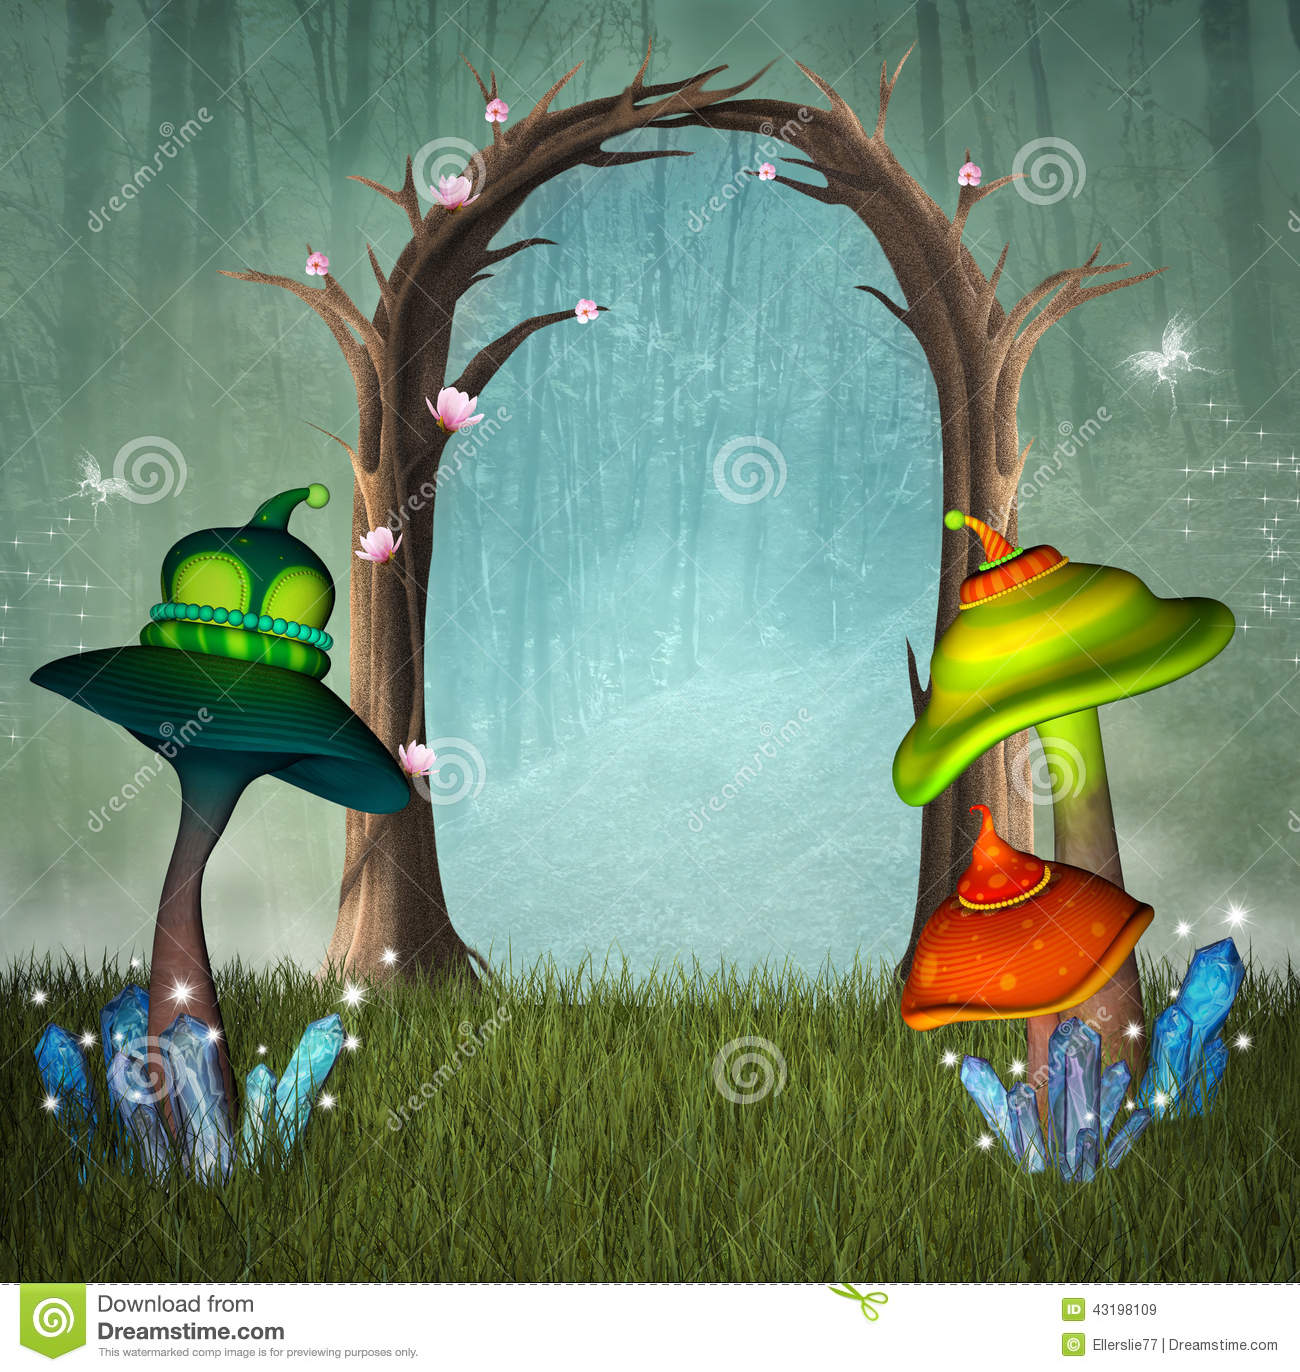 Enchanted forest passage